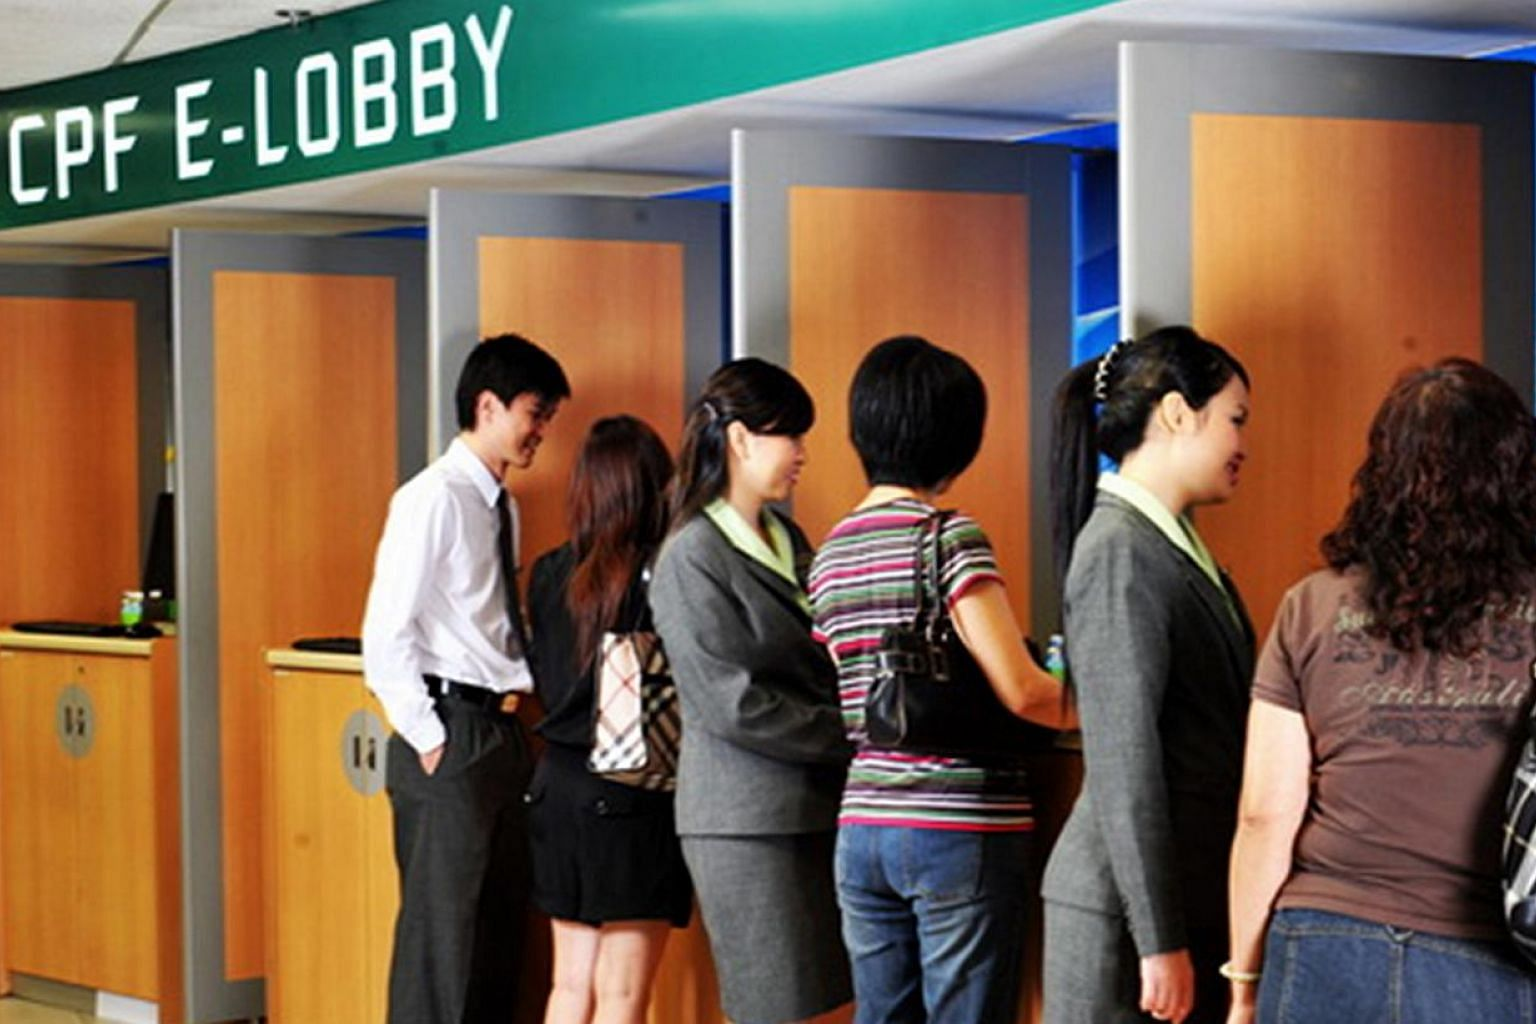 File photo of people at the CPF E-Lobby. --PHOTO: CPF